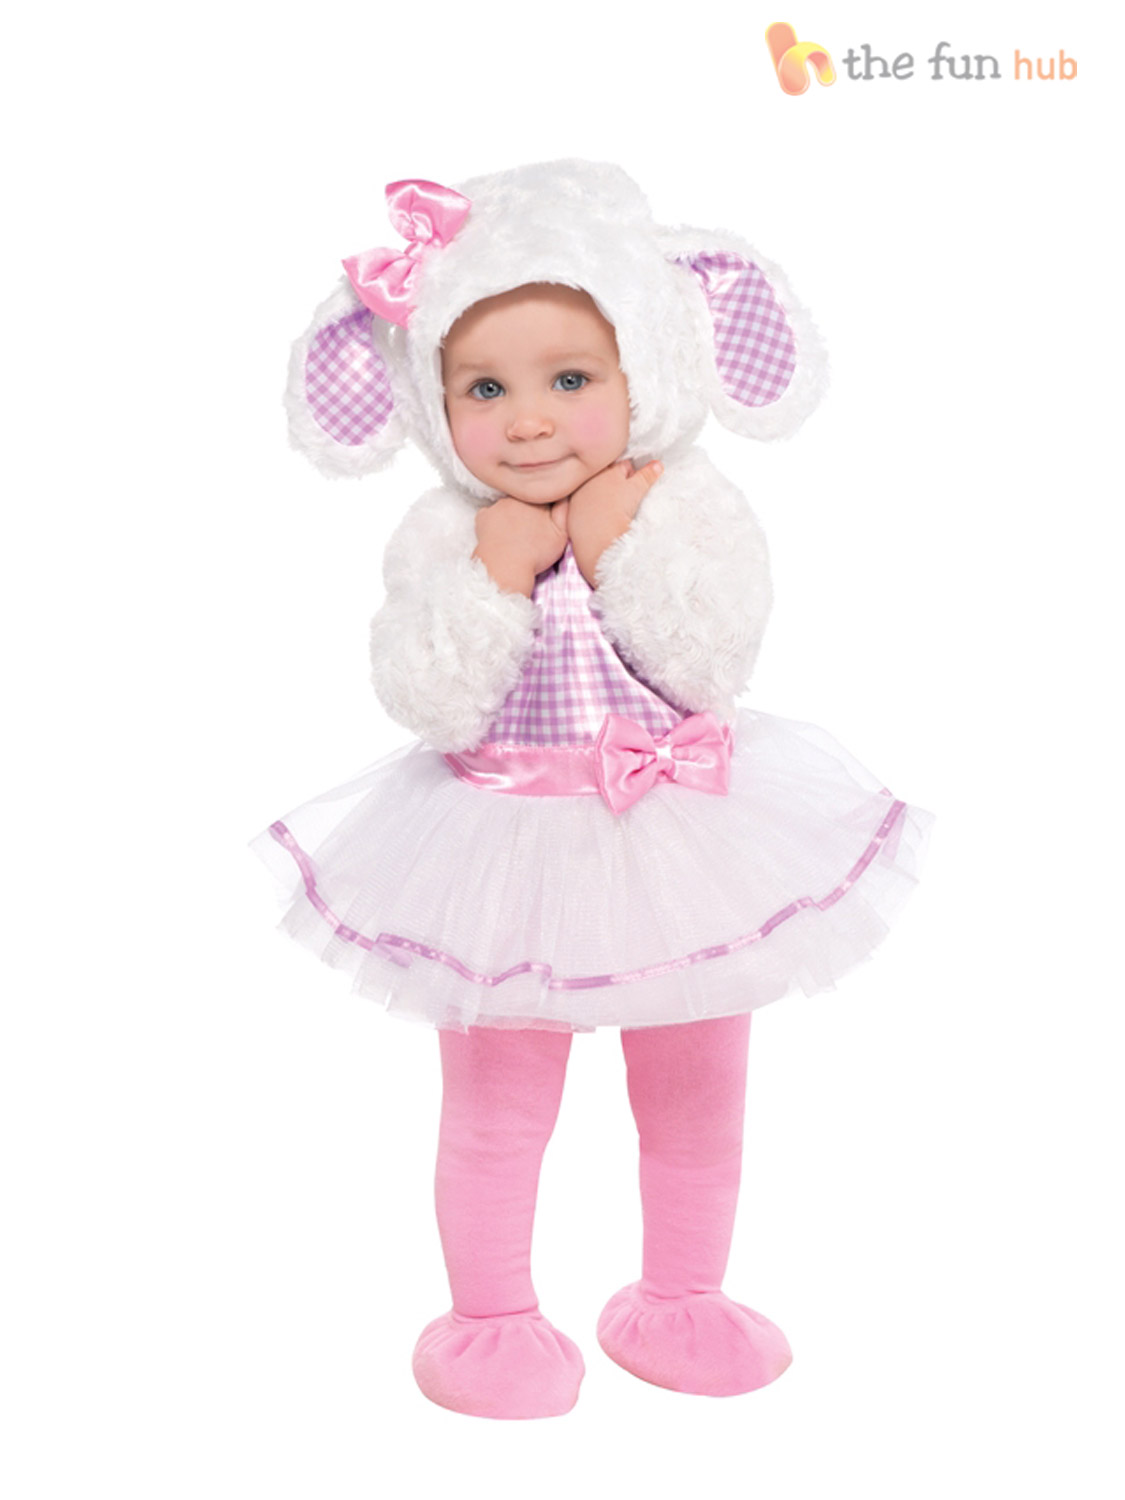 Play Cute Baby Dress Up online on hitseparatingfiletransfer.tk Every day new Girls Games online! Cute Baby Dress Up is Safe, Cool to play and Free!4/4(K).